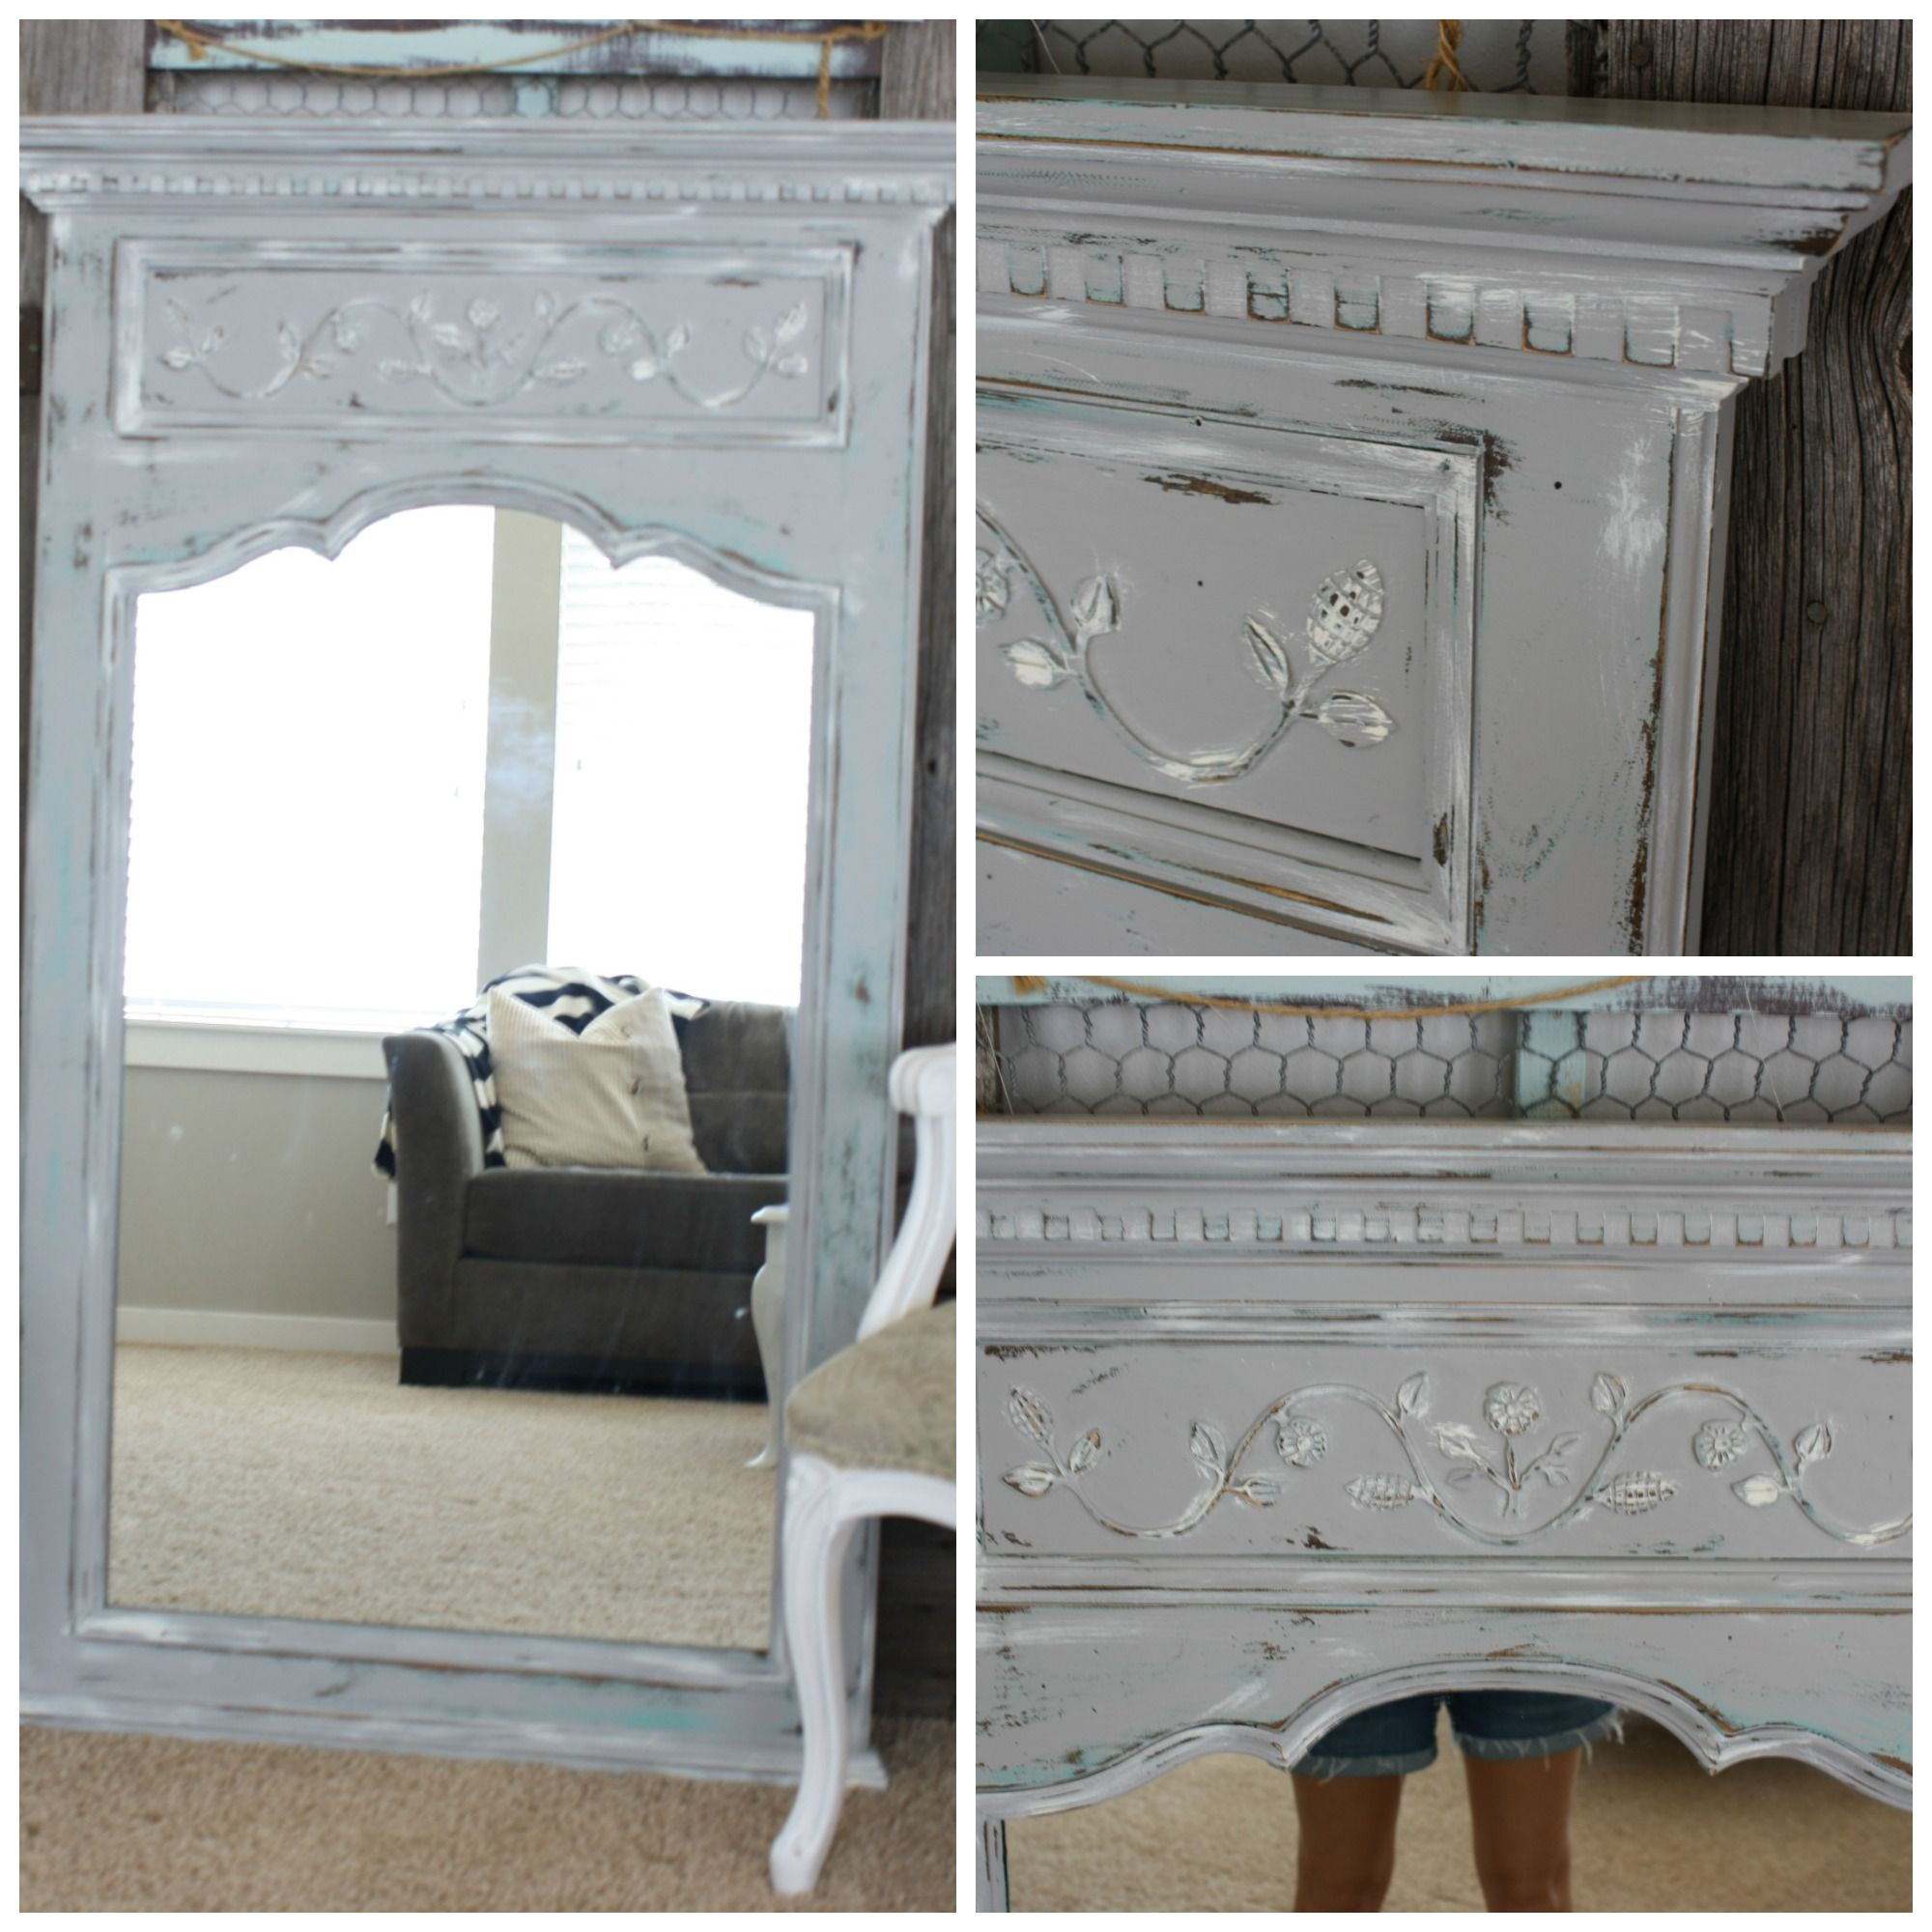 Distressed French Mirror #DIY #paintedfurniture   Www.countrychicpaint.com/ Blog